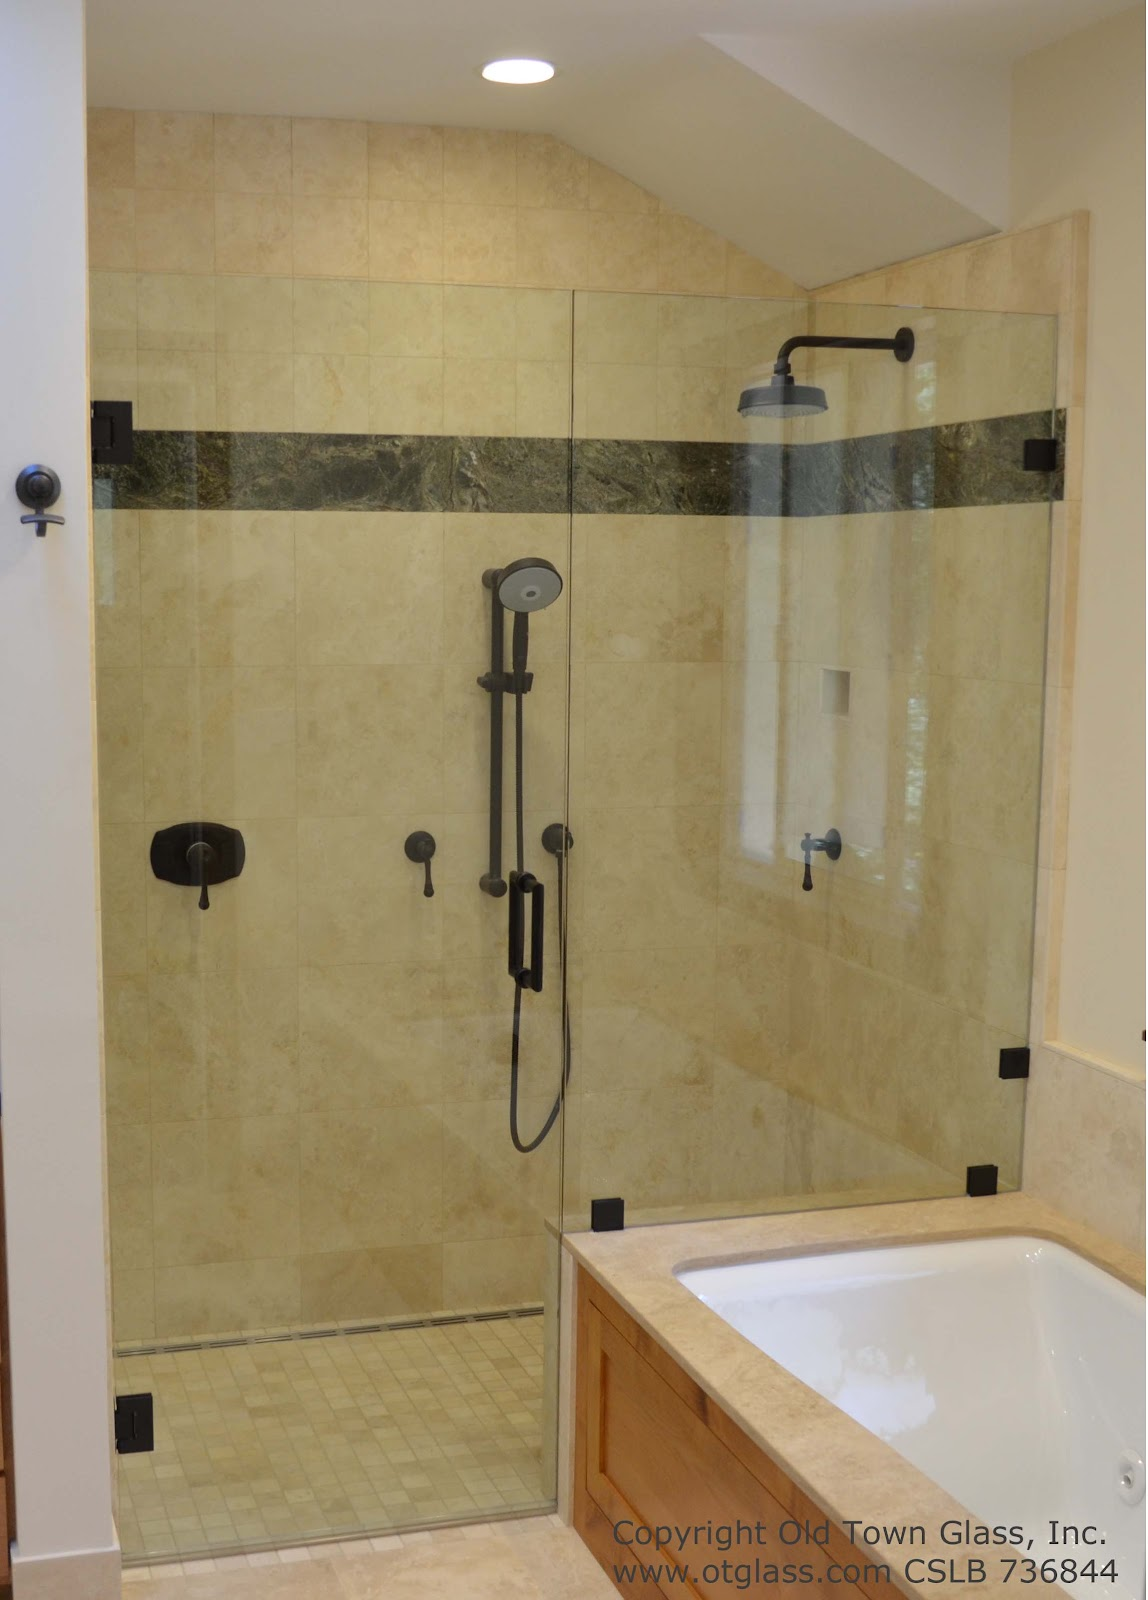 Bath Remodel With An Amazing Glass Shower Enclosure In